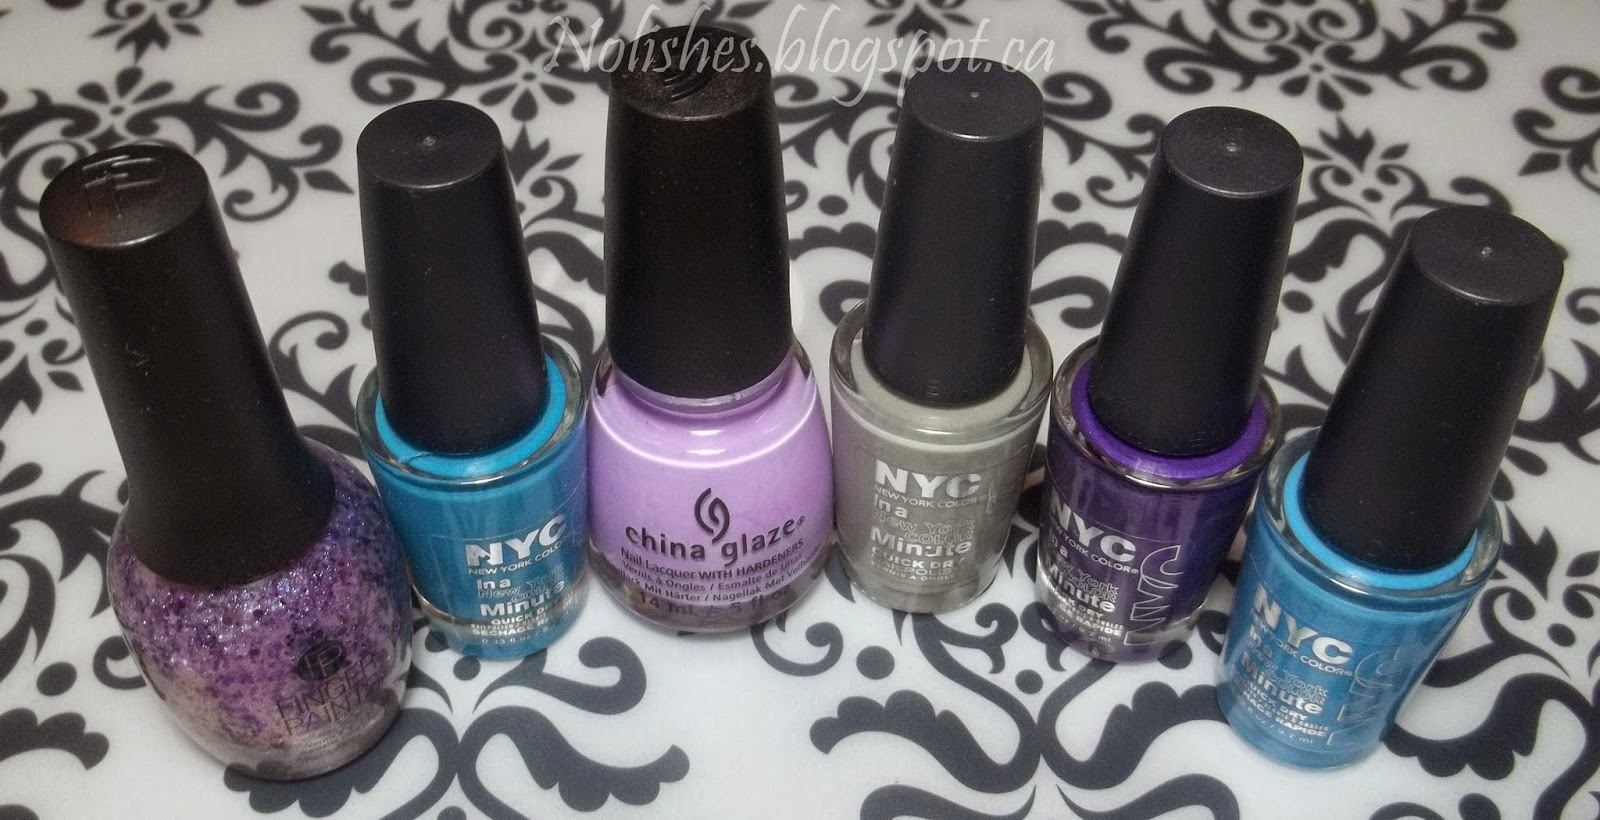 Finger Paints 'Violaceous Vase', NYC 'Water Street Blue', China Glaze 'Lotus Begin', NYC 'Sidewalkers', NYC 'Prince Street', and NYC 'NY Blues'